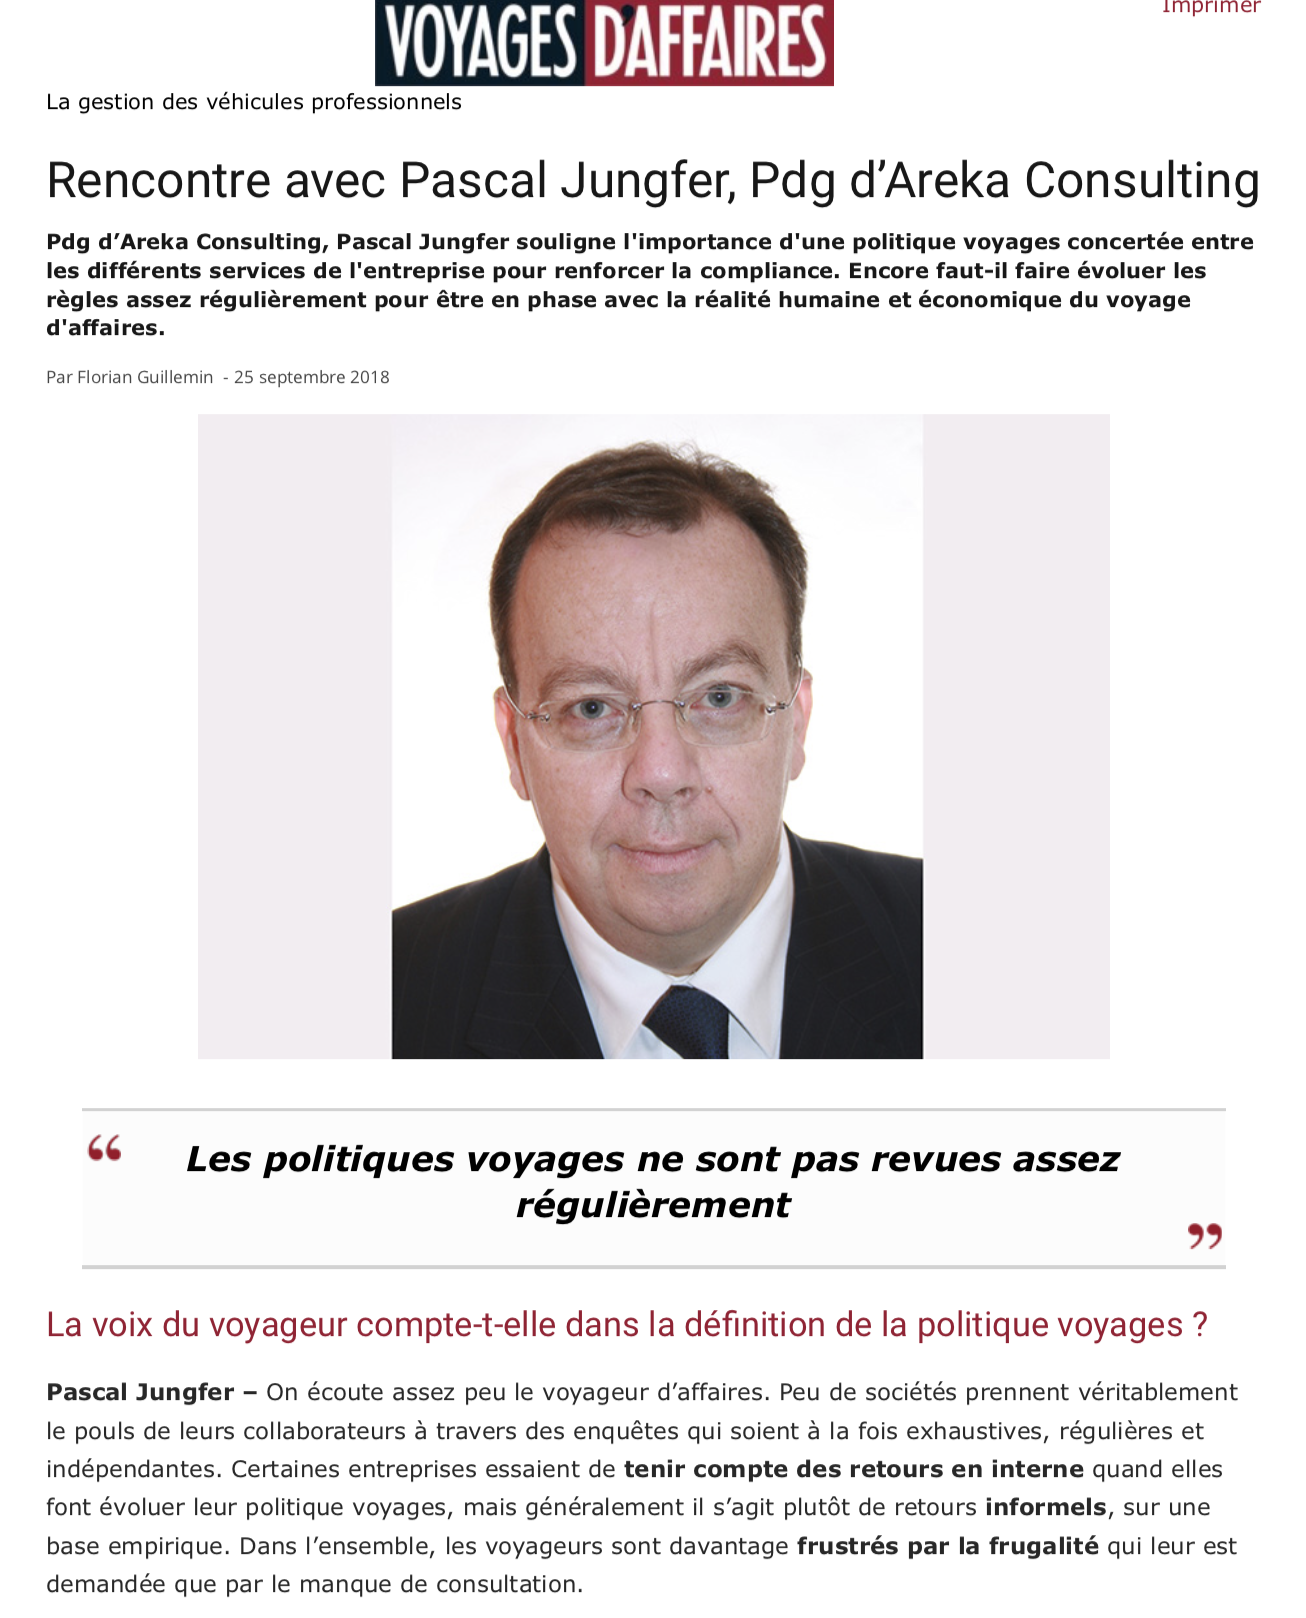 voyages, d'affaires, pascal jungfer